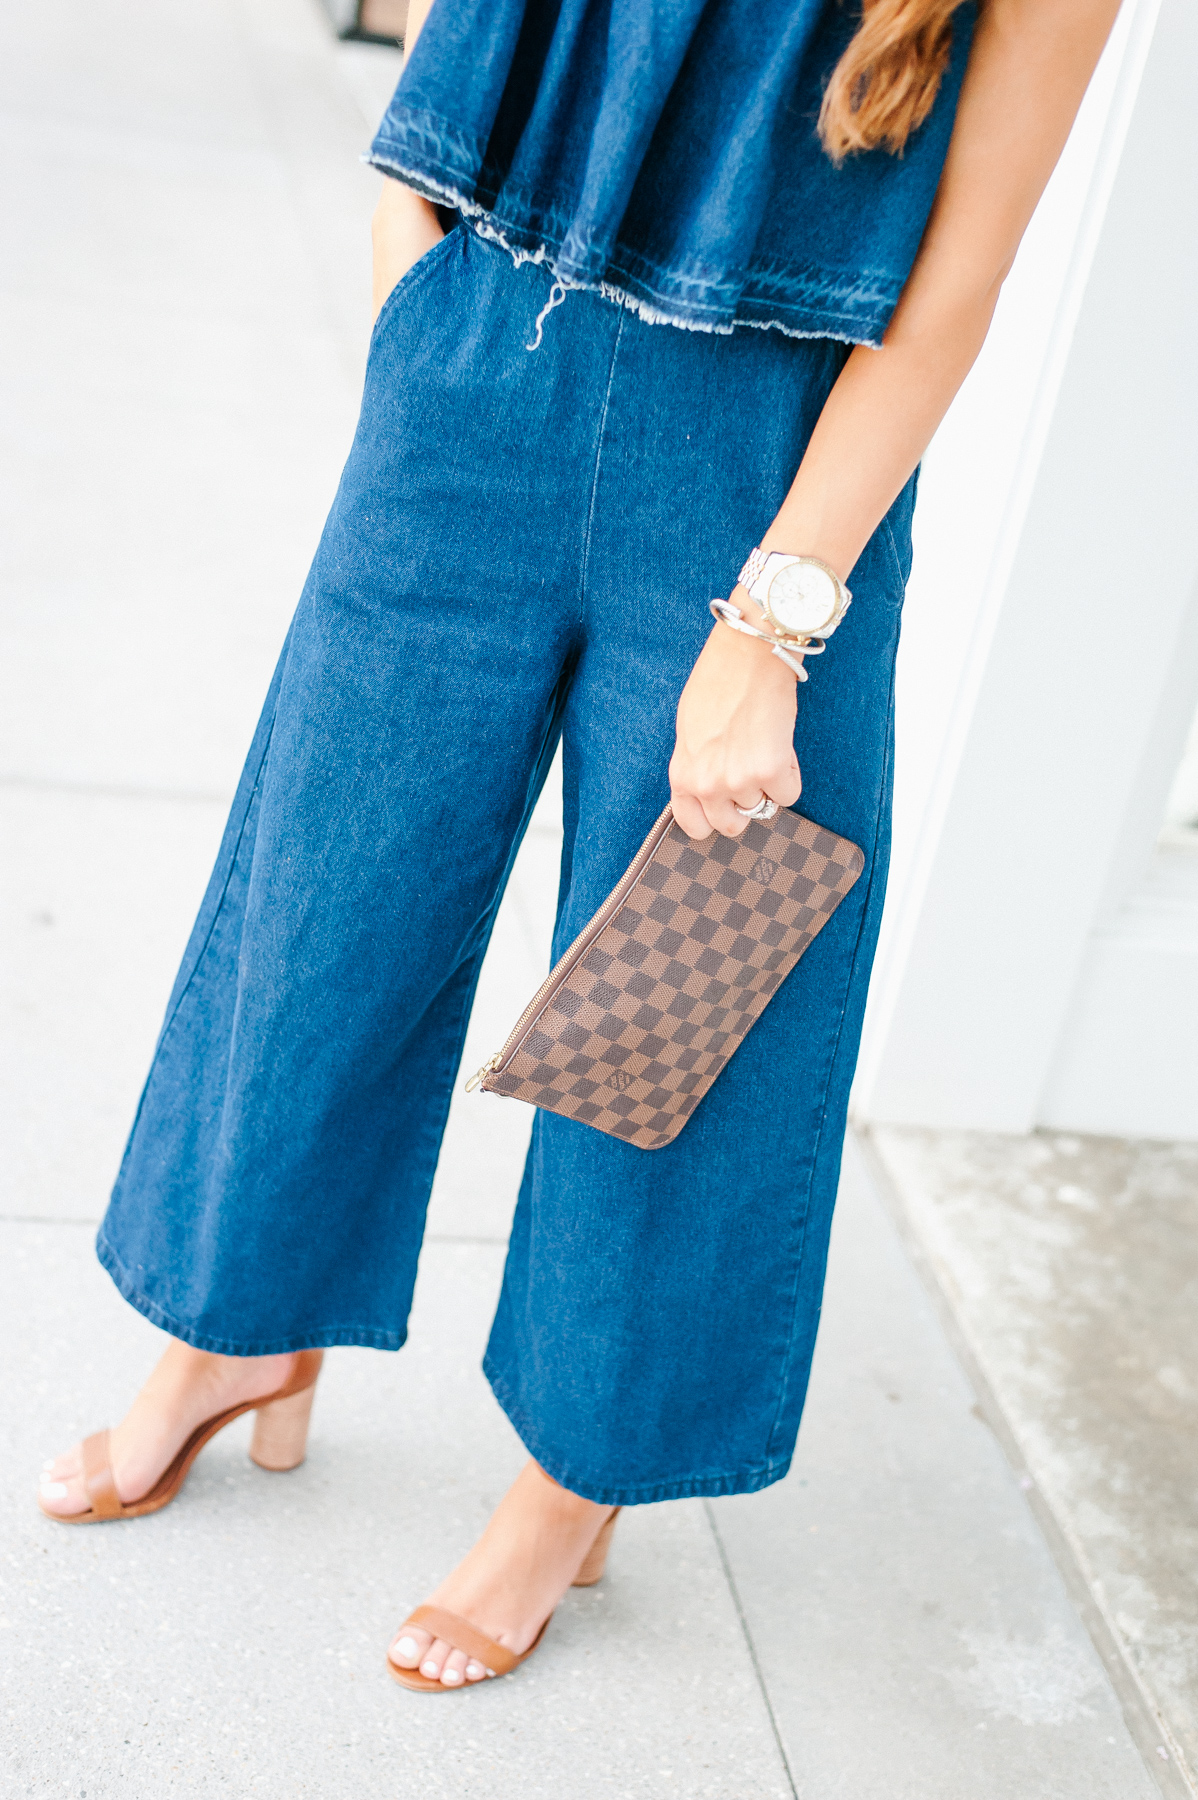 Dress Up Buttercup, Dede Raad, Houston blogger, fashion blogger, J.O.A. Strapless Crop Denim Jumpsuit